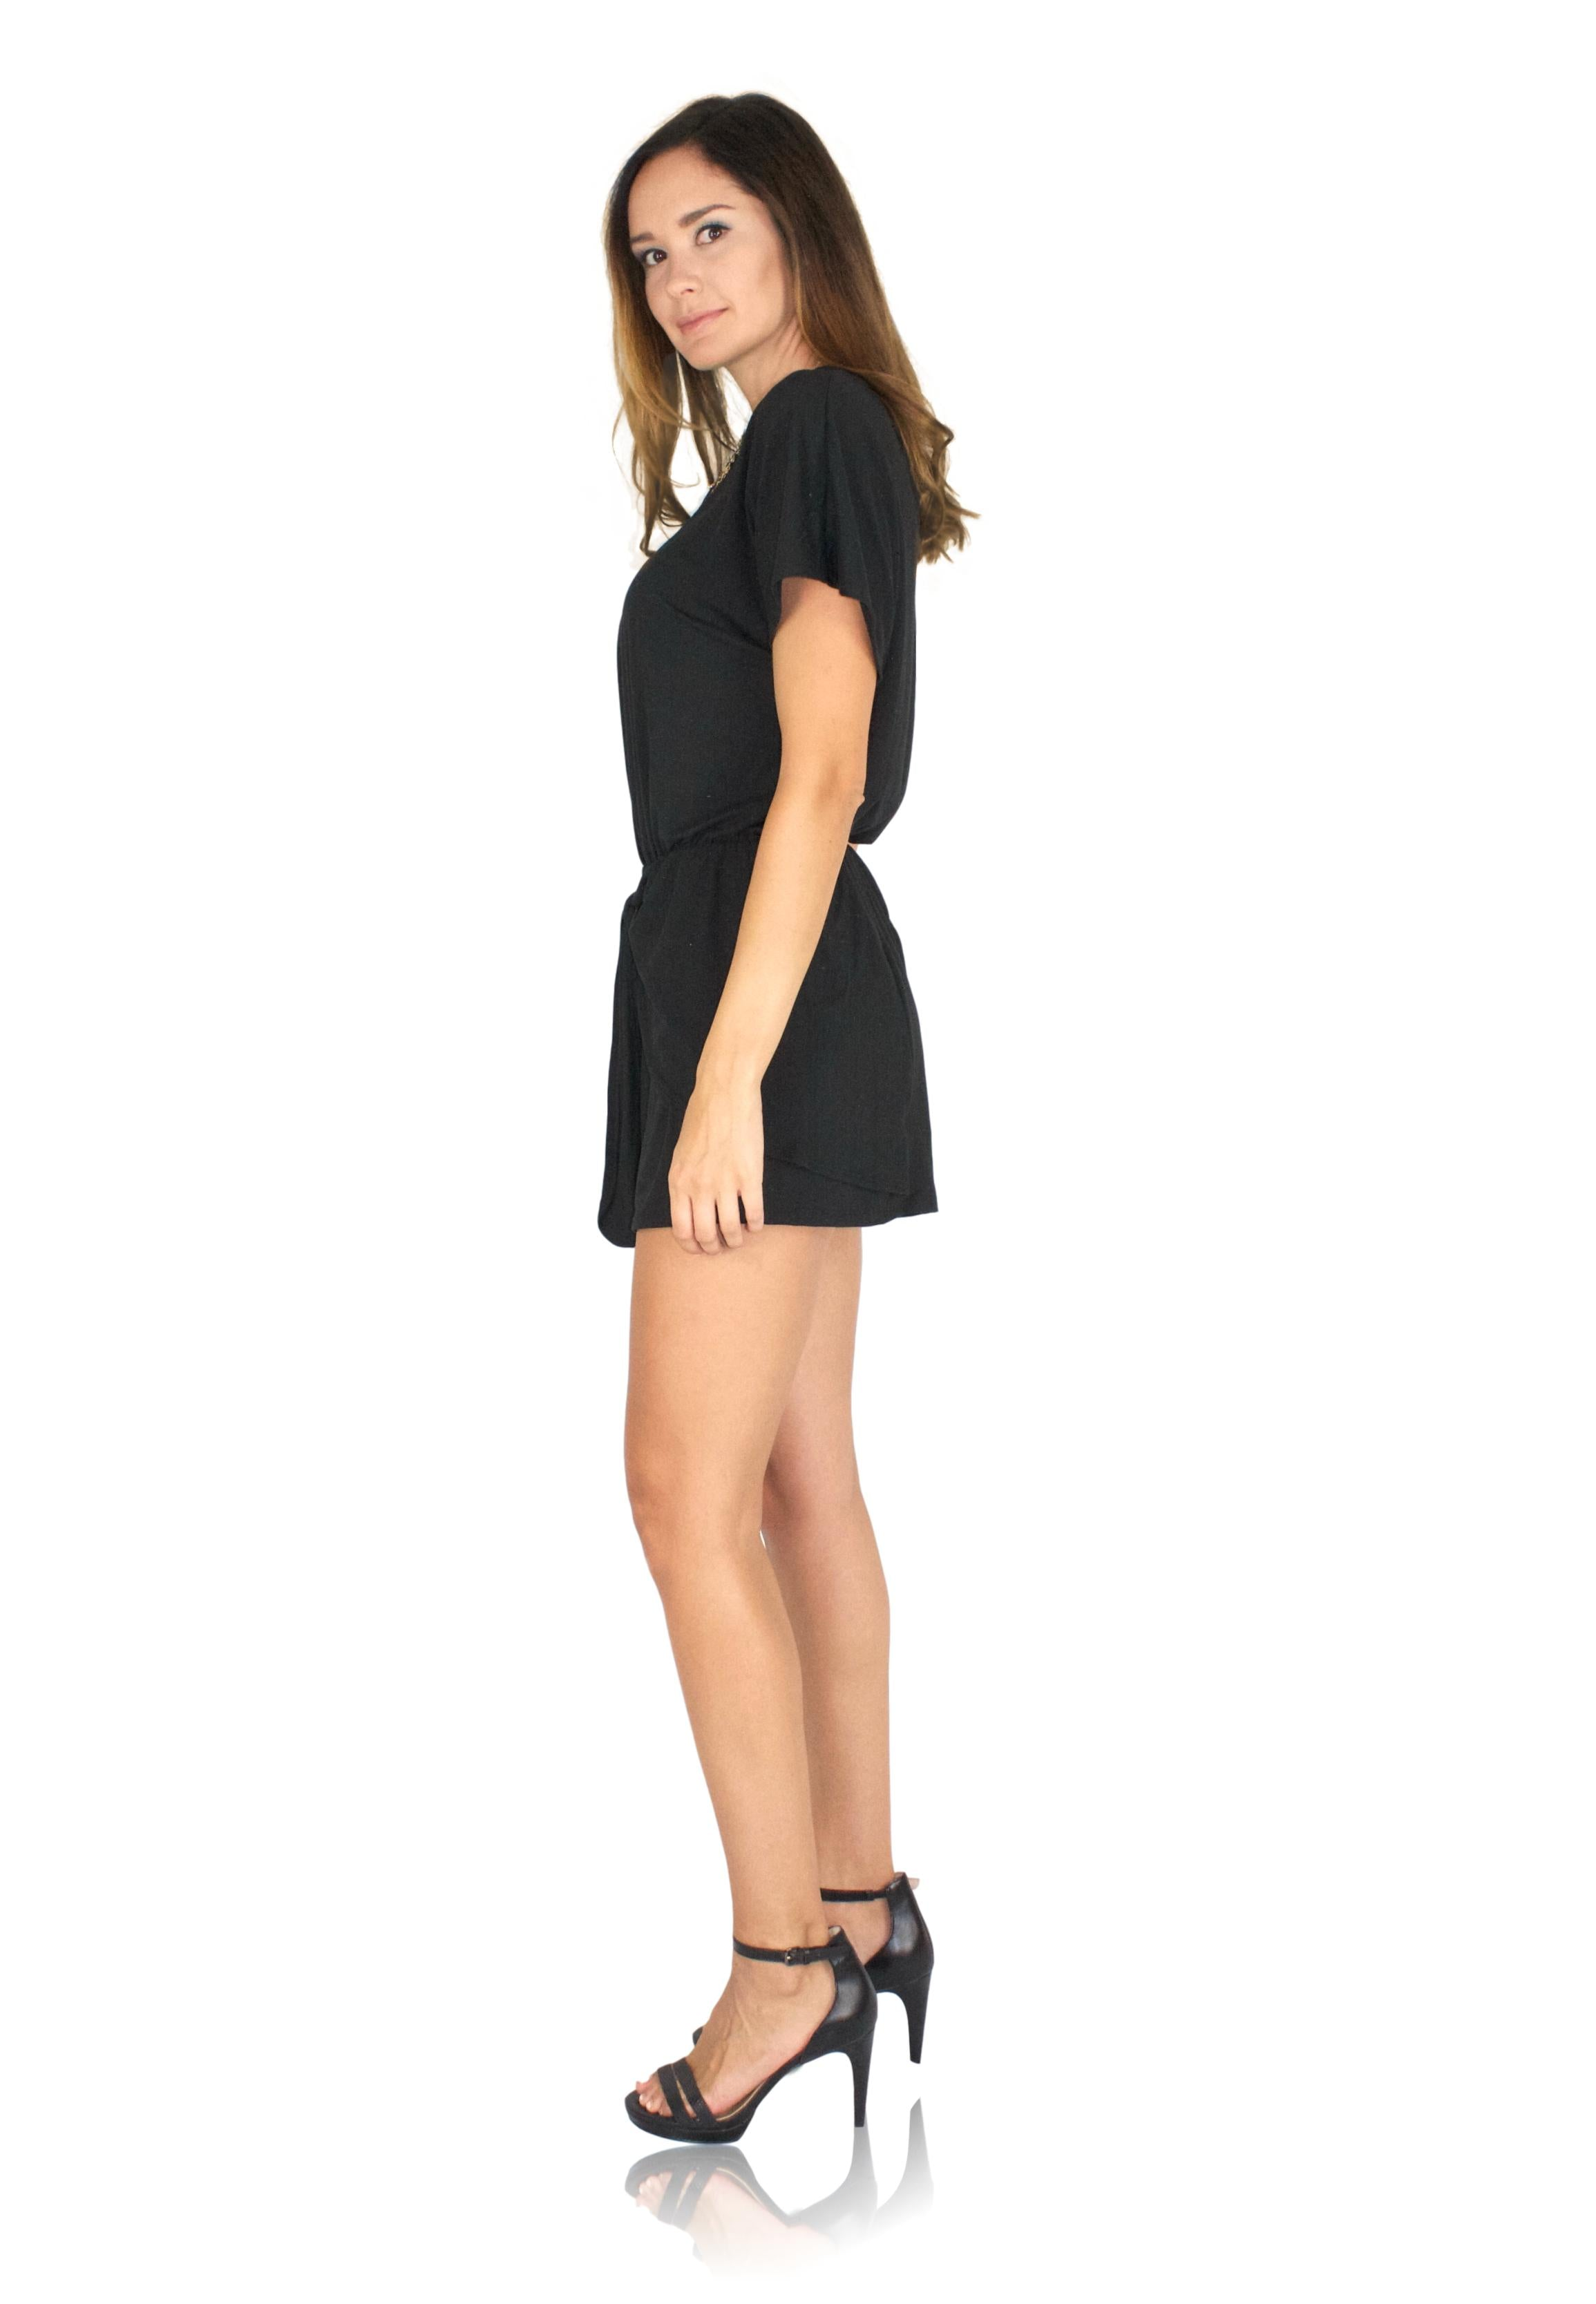 DRIFTER ROMPER IN BLACK / FINAL CLEARANCE